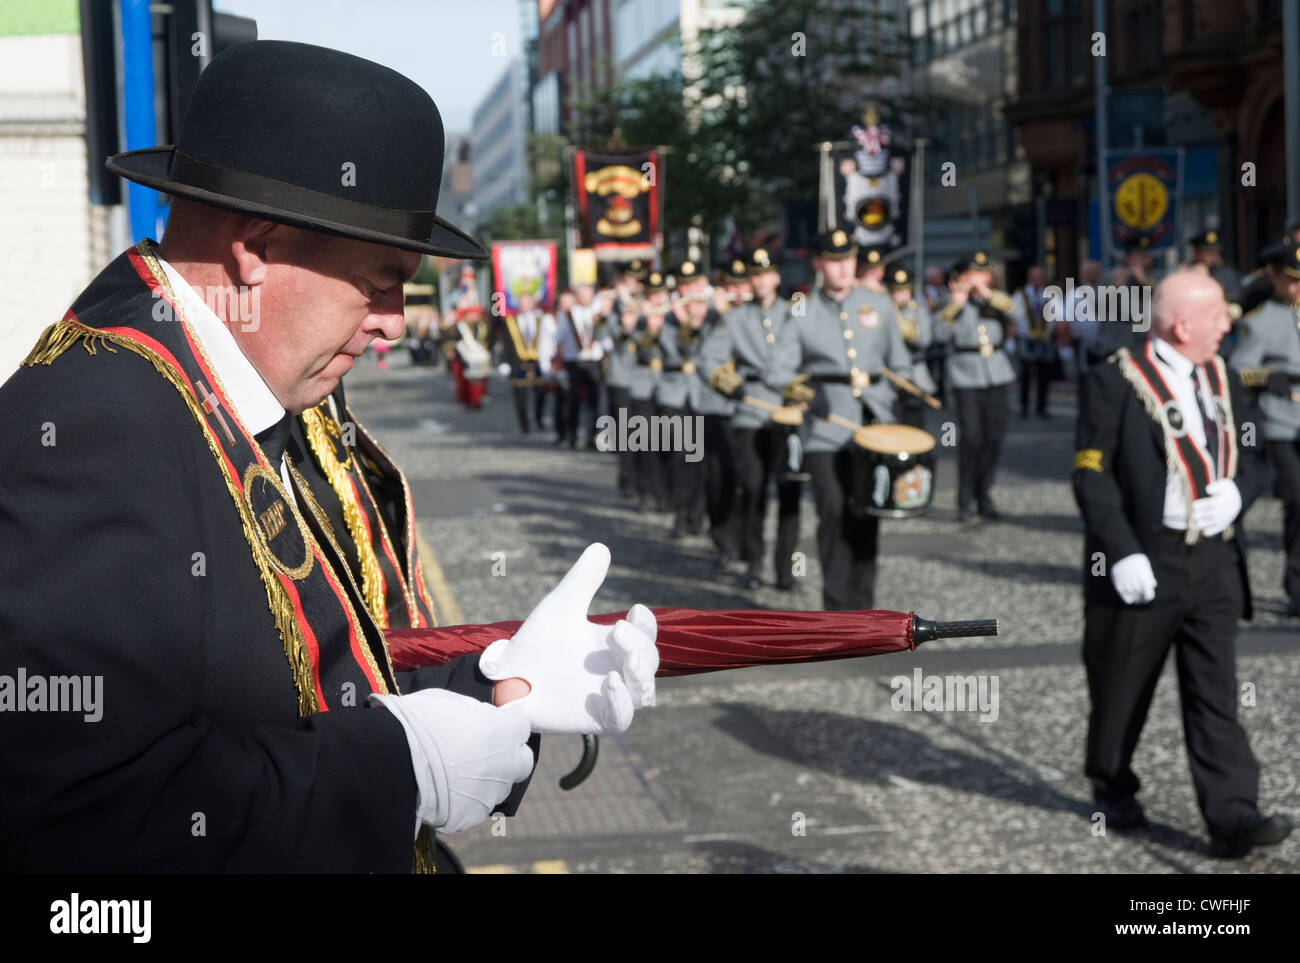 Orangeman adjusts his gloves during a march in Belfast. - Stock Image